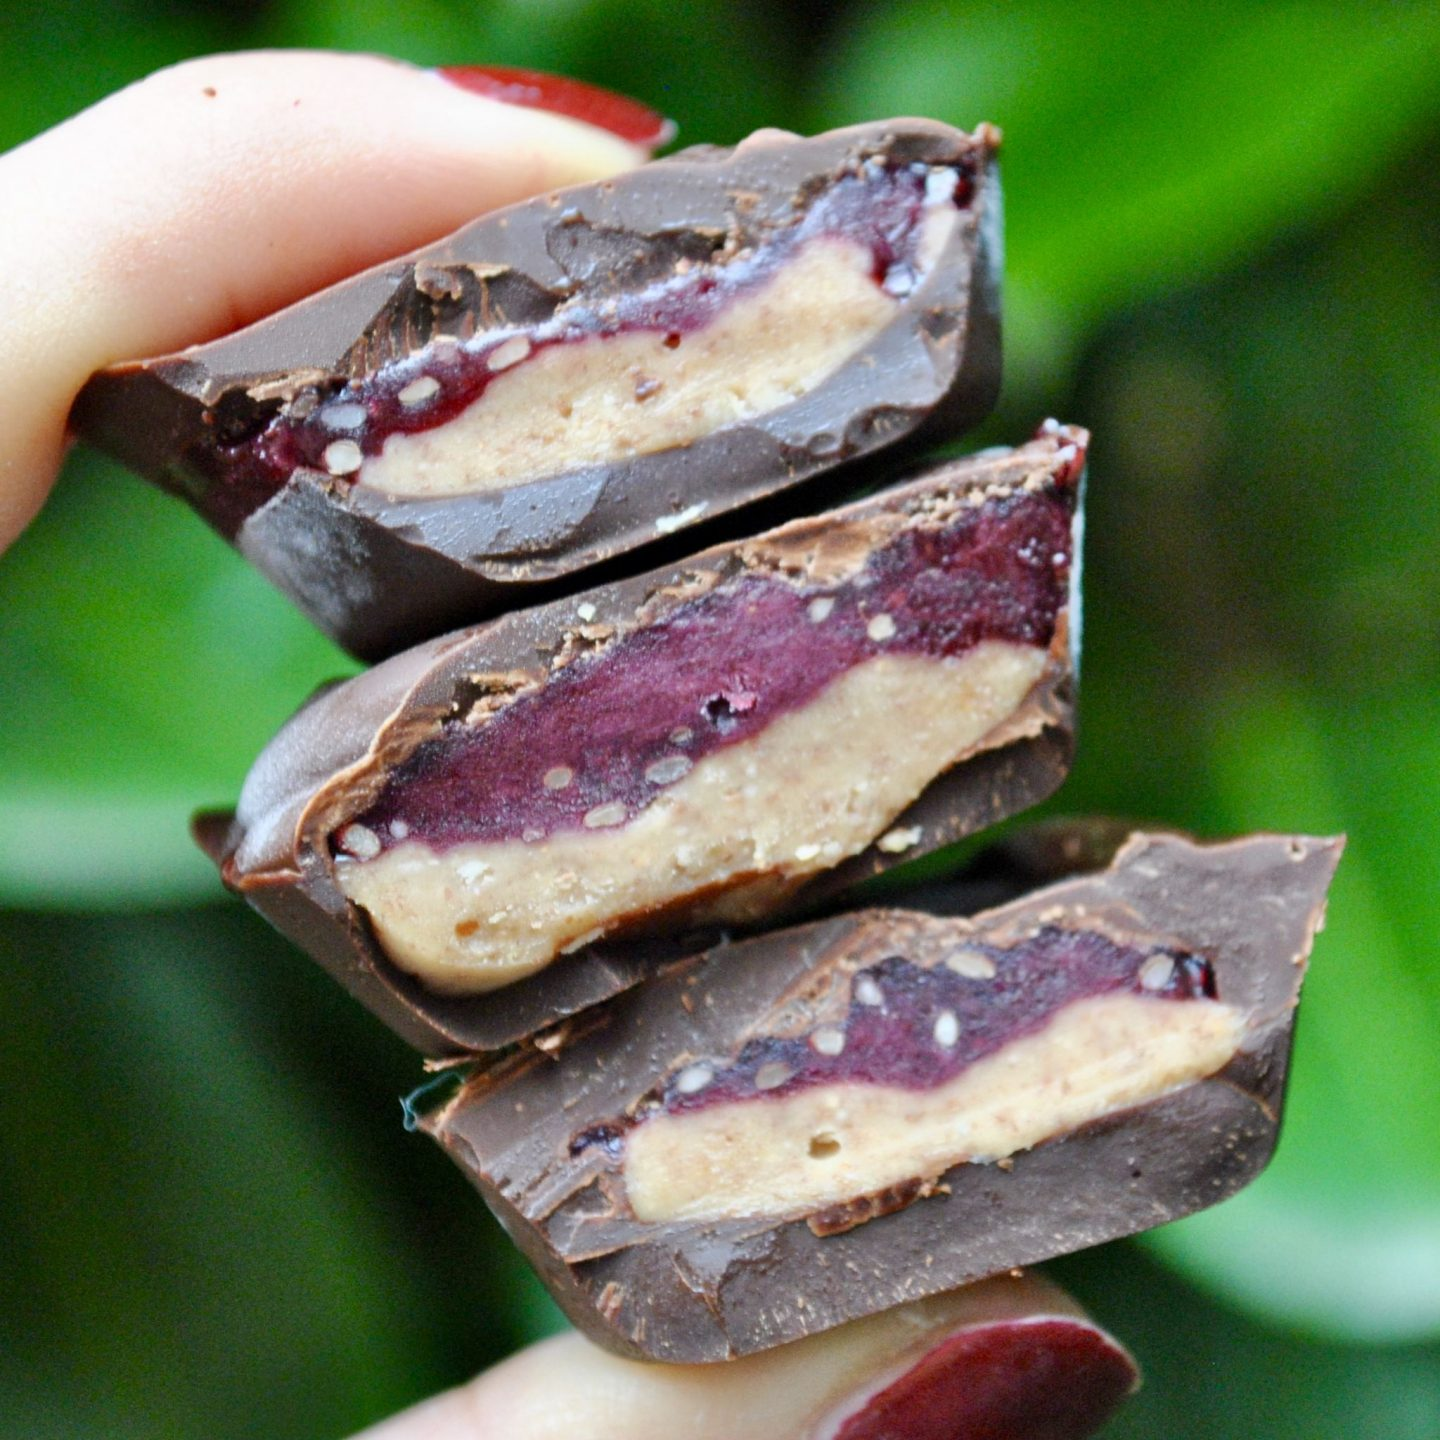 Chocolate Peanut Butter Jelly Cups